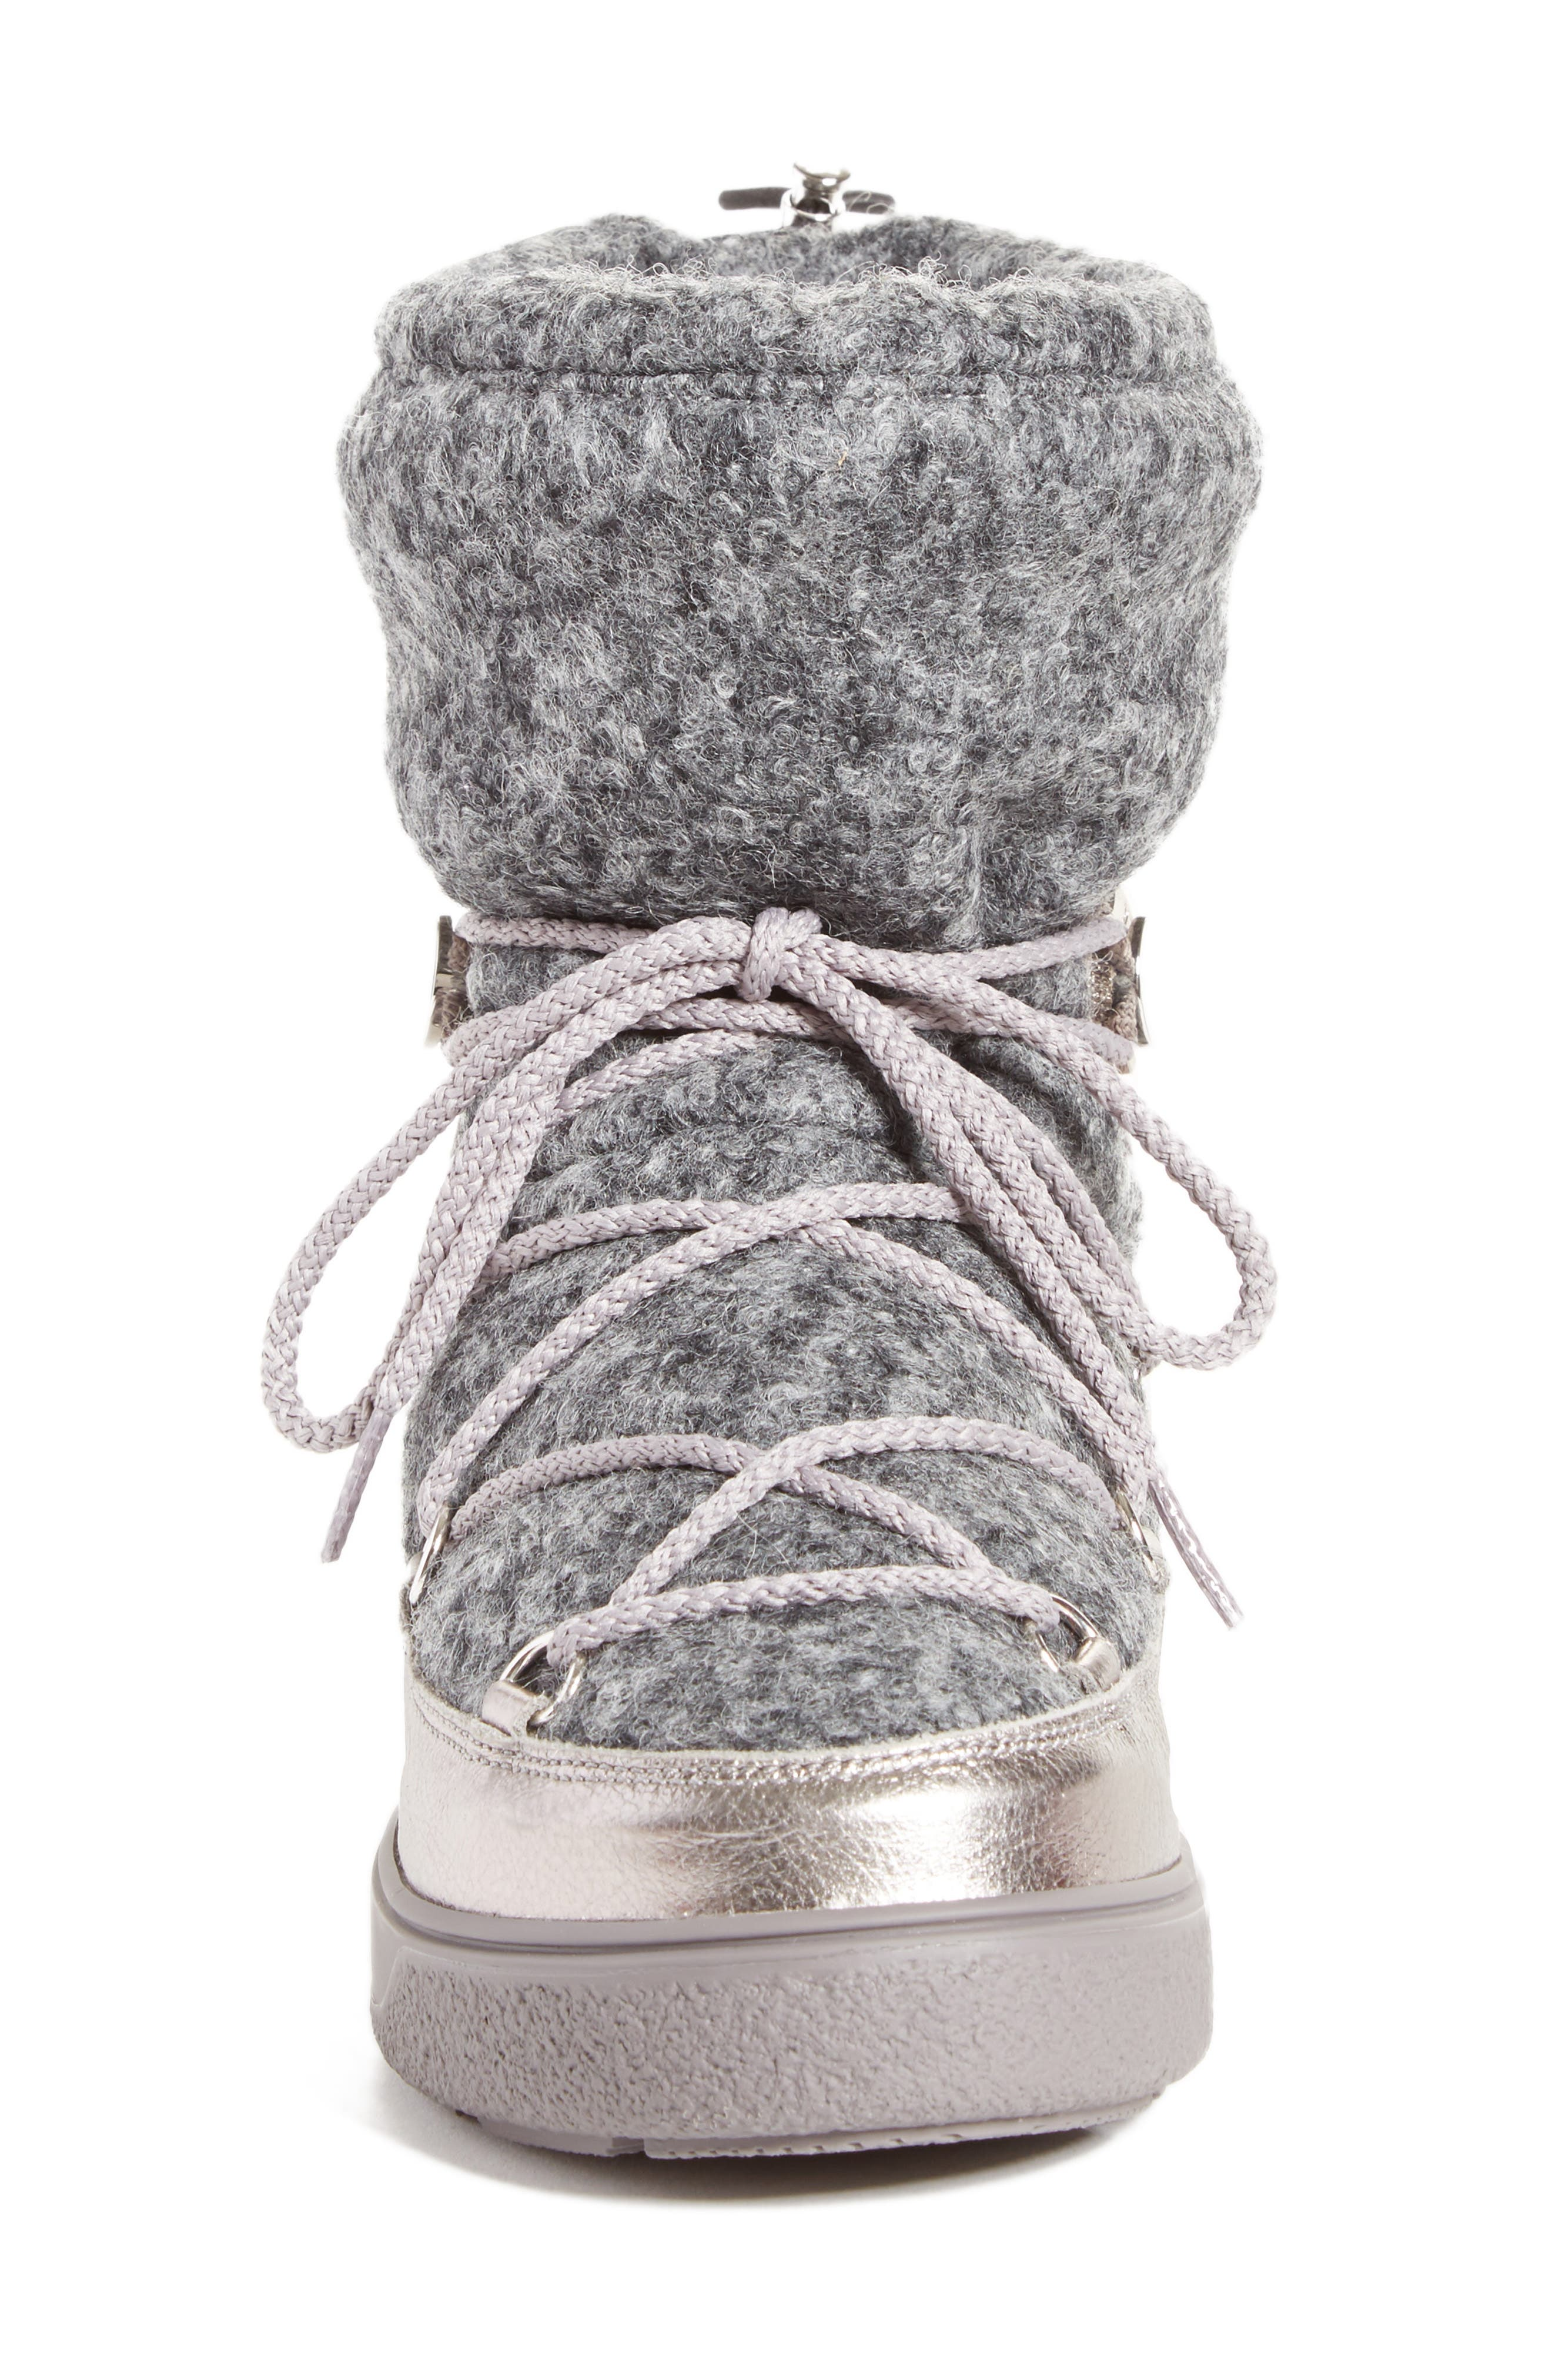 Ynnaf Boiled Wool Lined Snow Boot,                             Alternate thumbnail 4, color,                             Silver